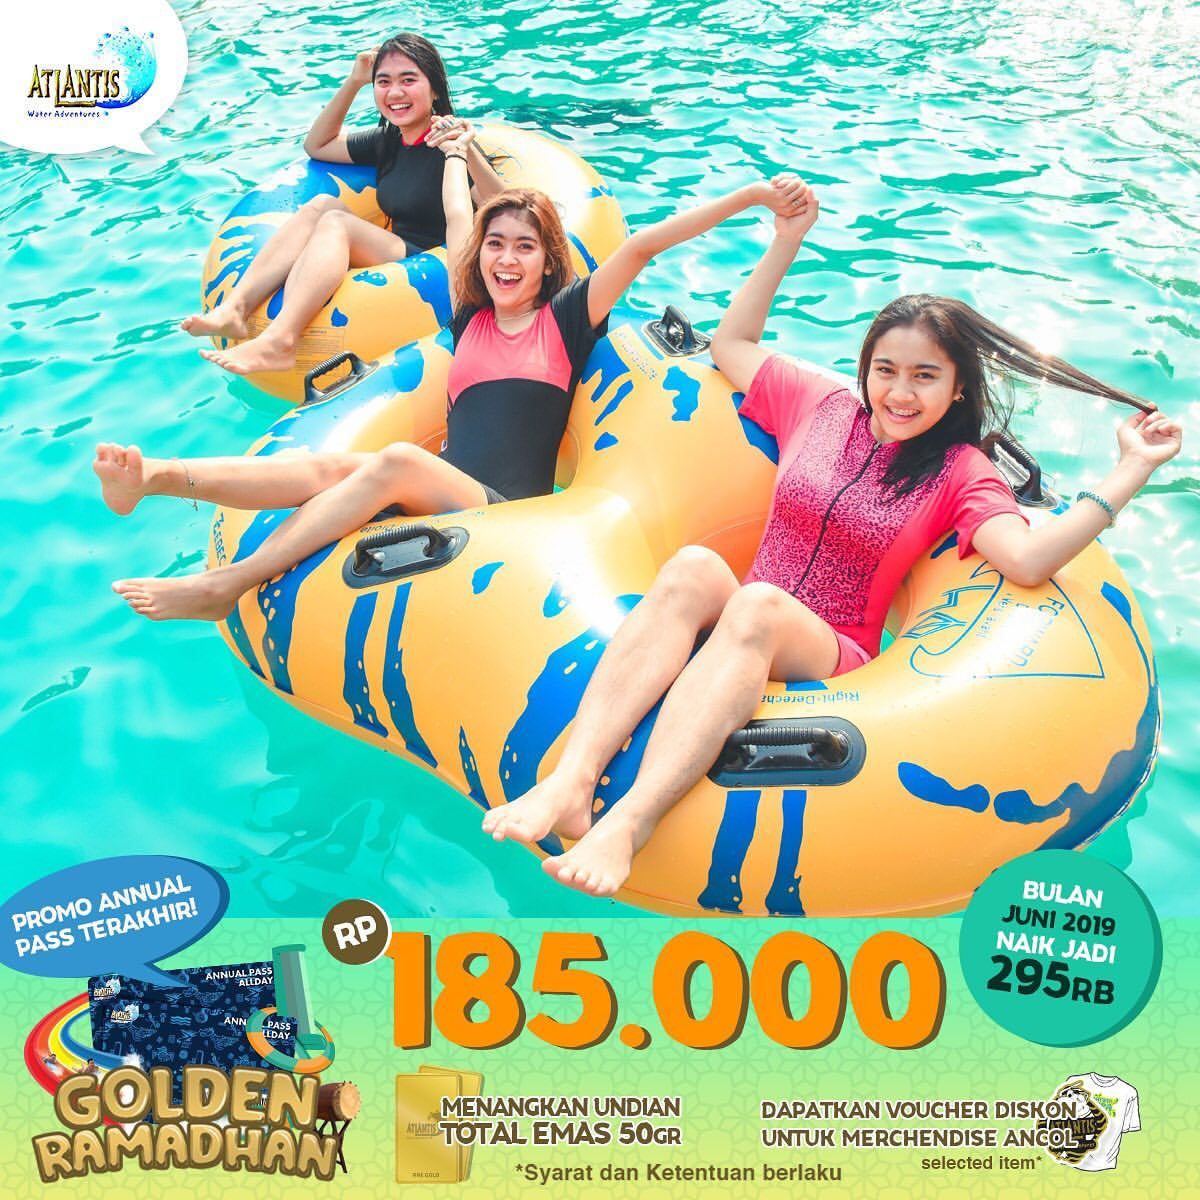 Atlantis Water Adventure Promo ATLANTIS GOLDEN RAMADHAN Harga Spesial Annual Pass AllDays cuma Rp.18